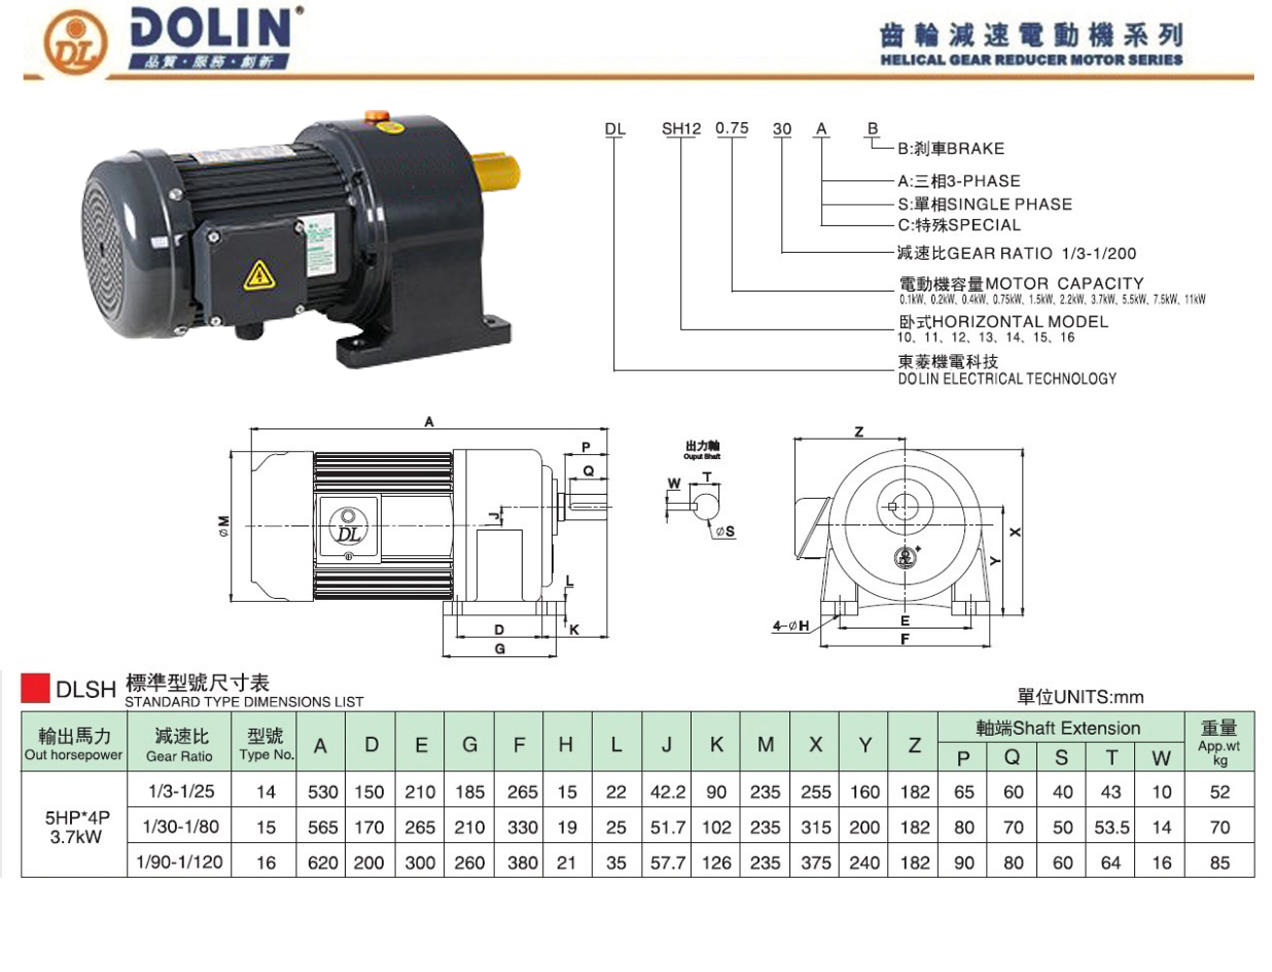 3.7kw gear motor catalogues